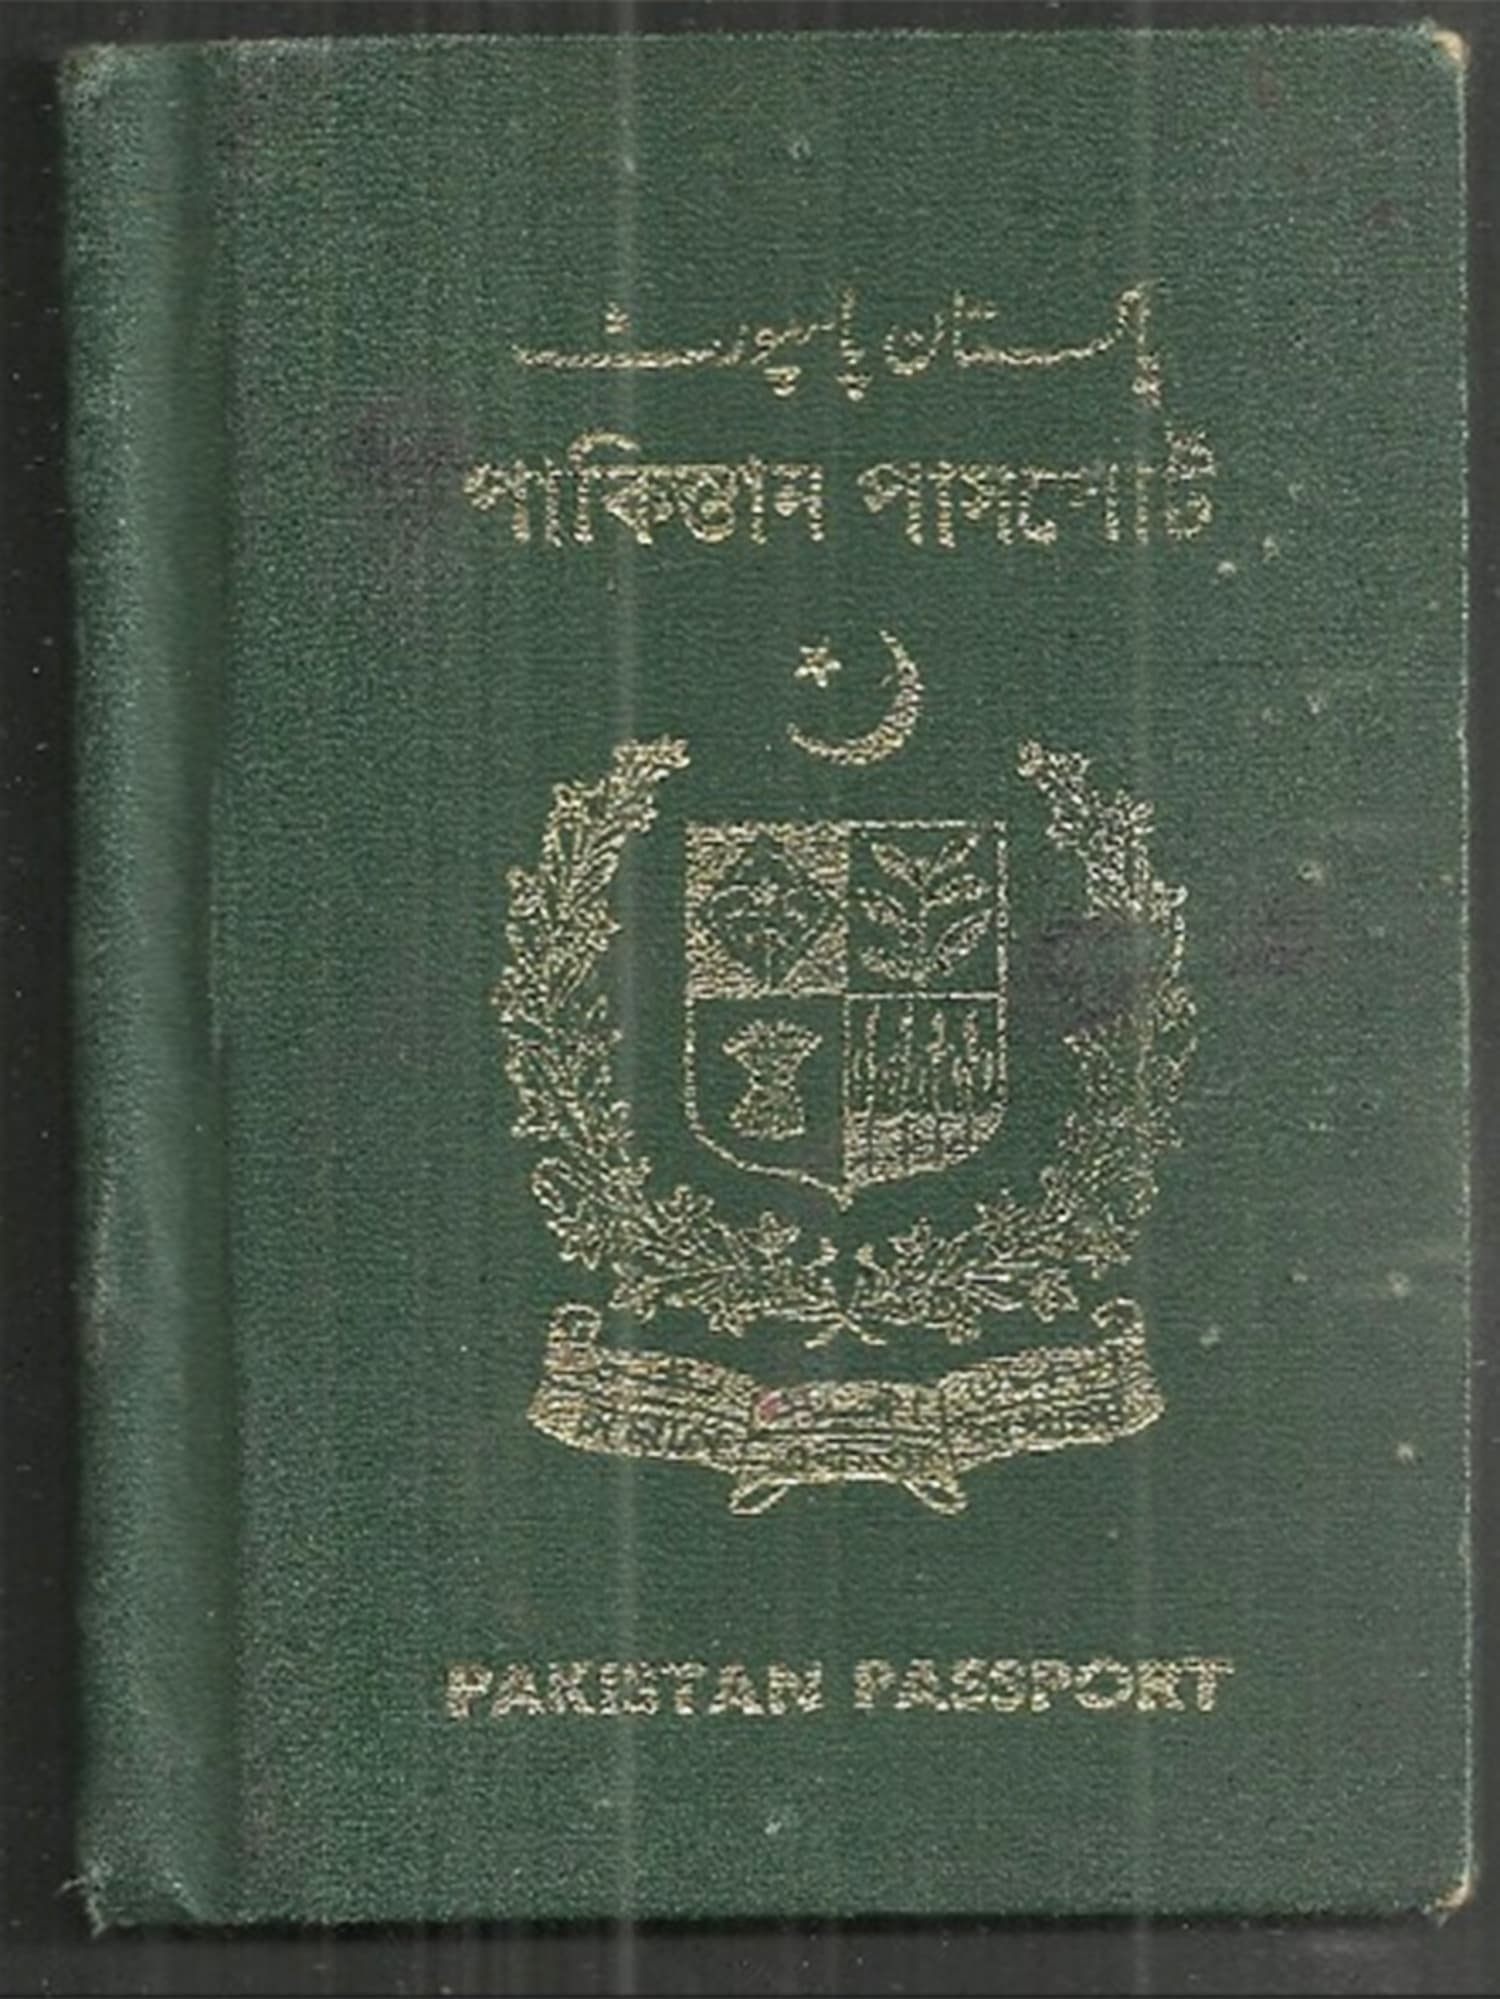 A 1970 Pakistani passport.